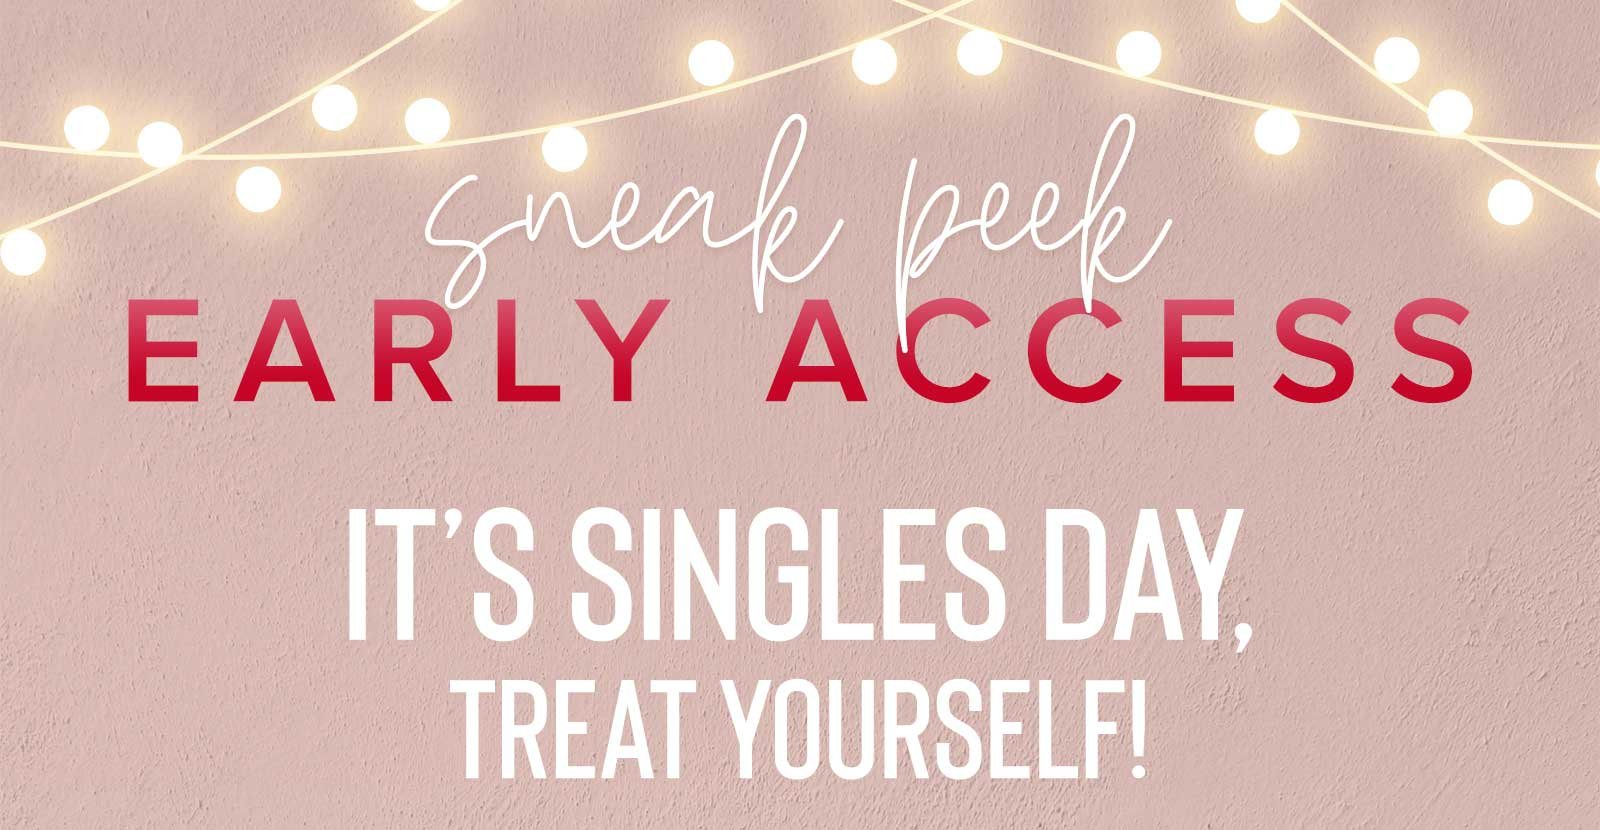 SINGLE'S DAY! 50% OFF EVERYTHING!